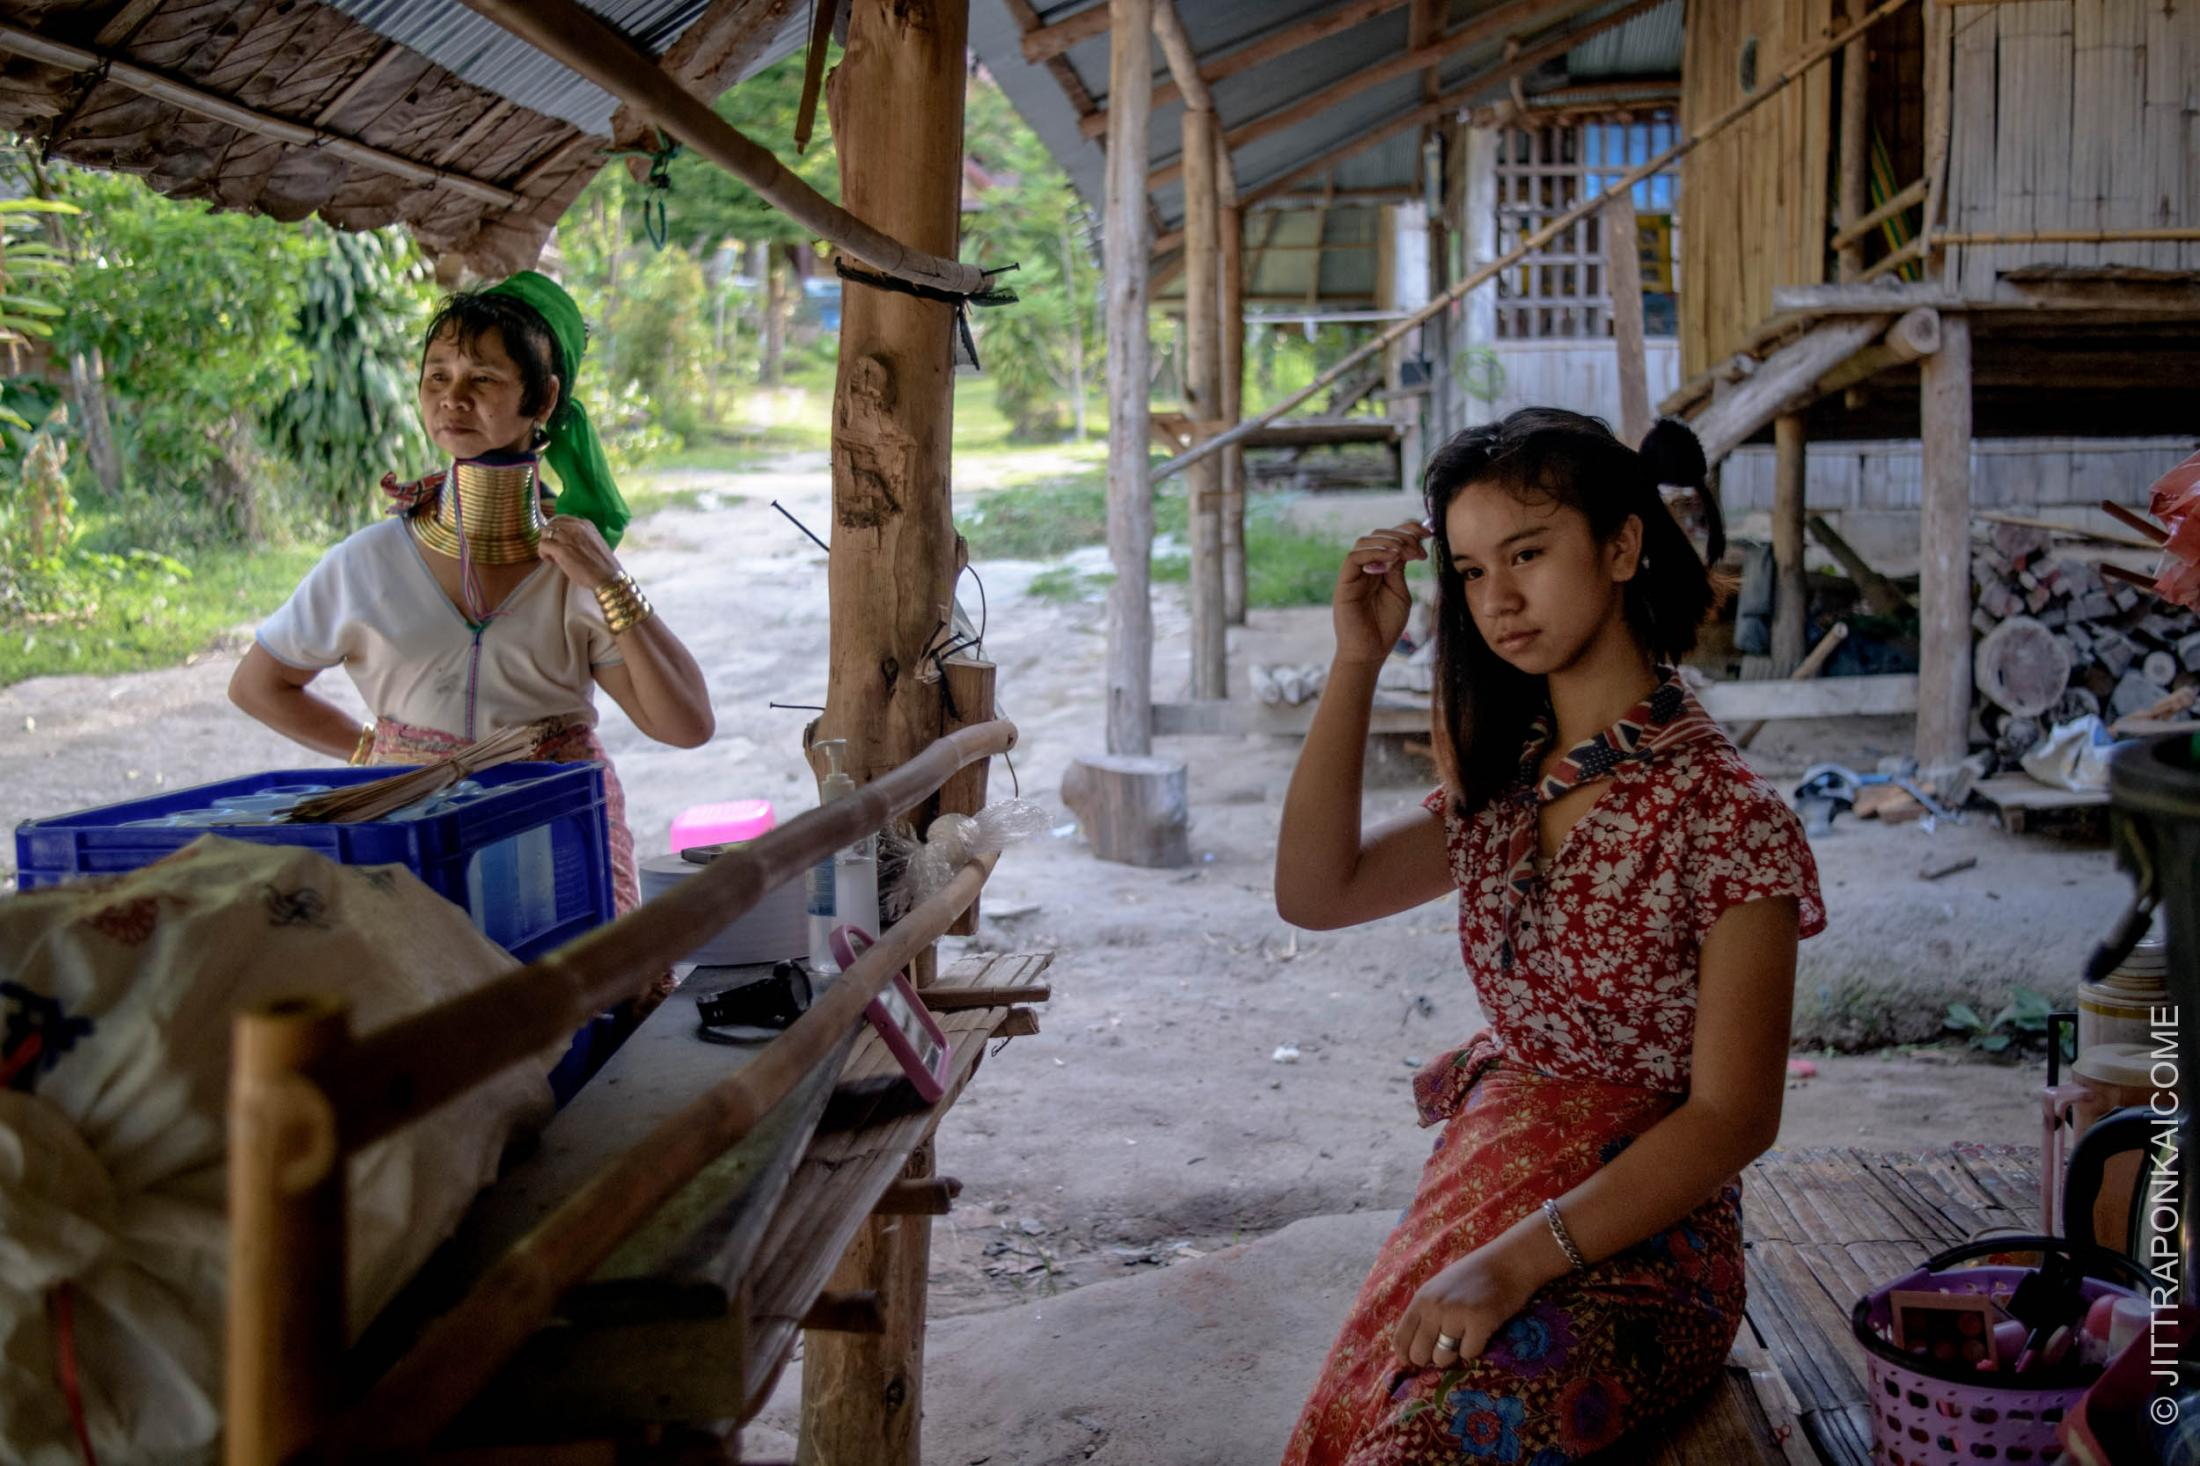 Ma Mee, 14 year old Kayan girl living with her grandmother since she was little, and feels like her home. But Covid-19 forced to move out due to Long Neck Karen tribe village tourist business at Baan Ting Luang has permanently ended. Chiang Mai – Thailand.